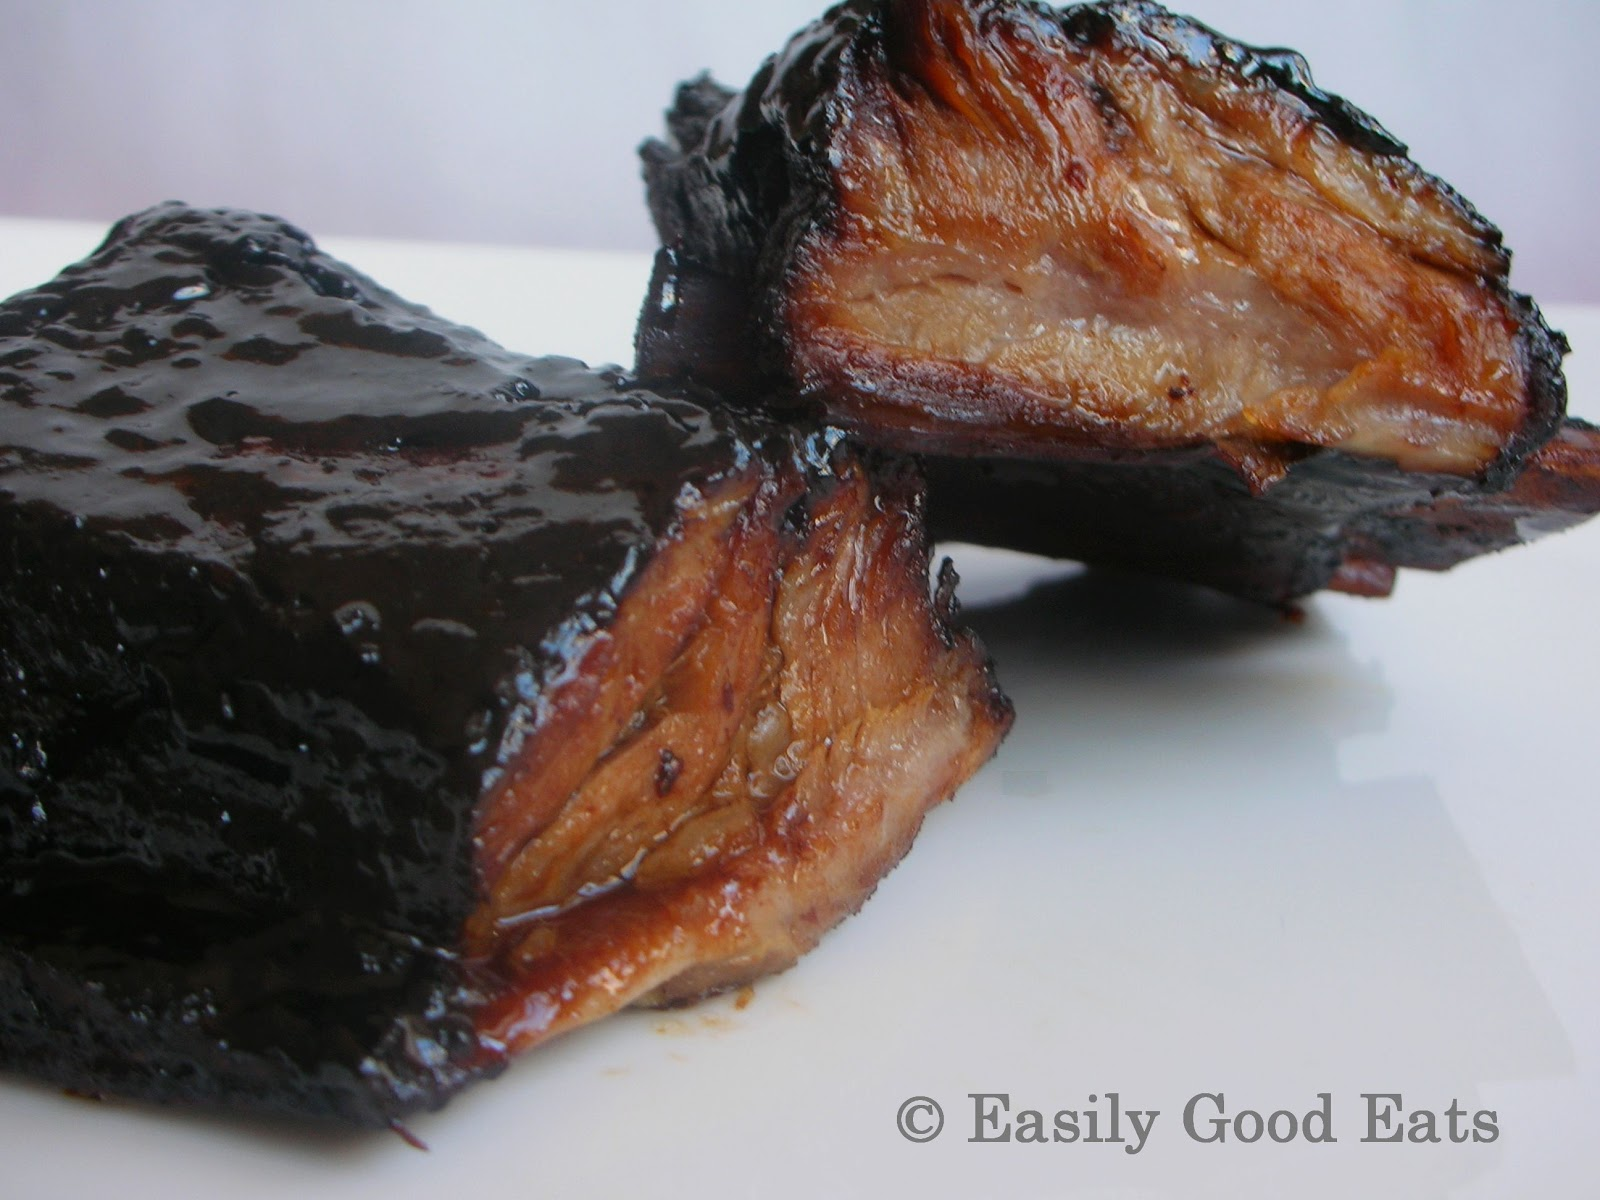 Easily Good Eats: Orange and Soy Glazed Baby Back Pork Ribs Recipe